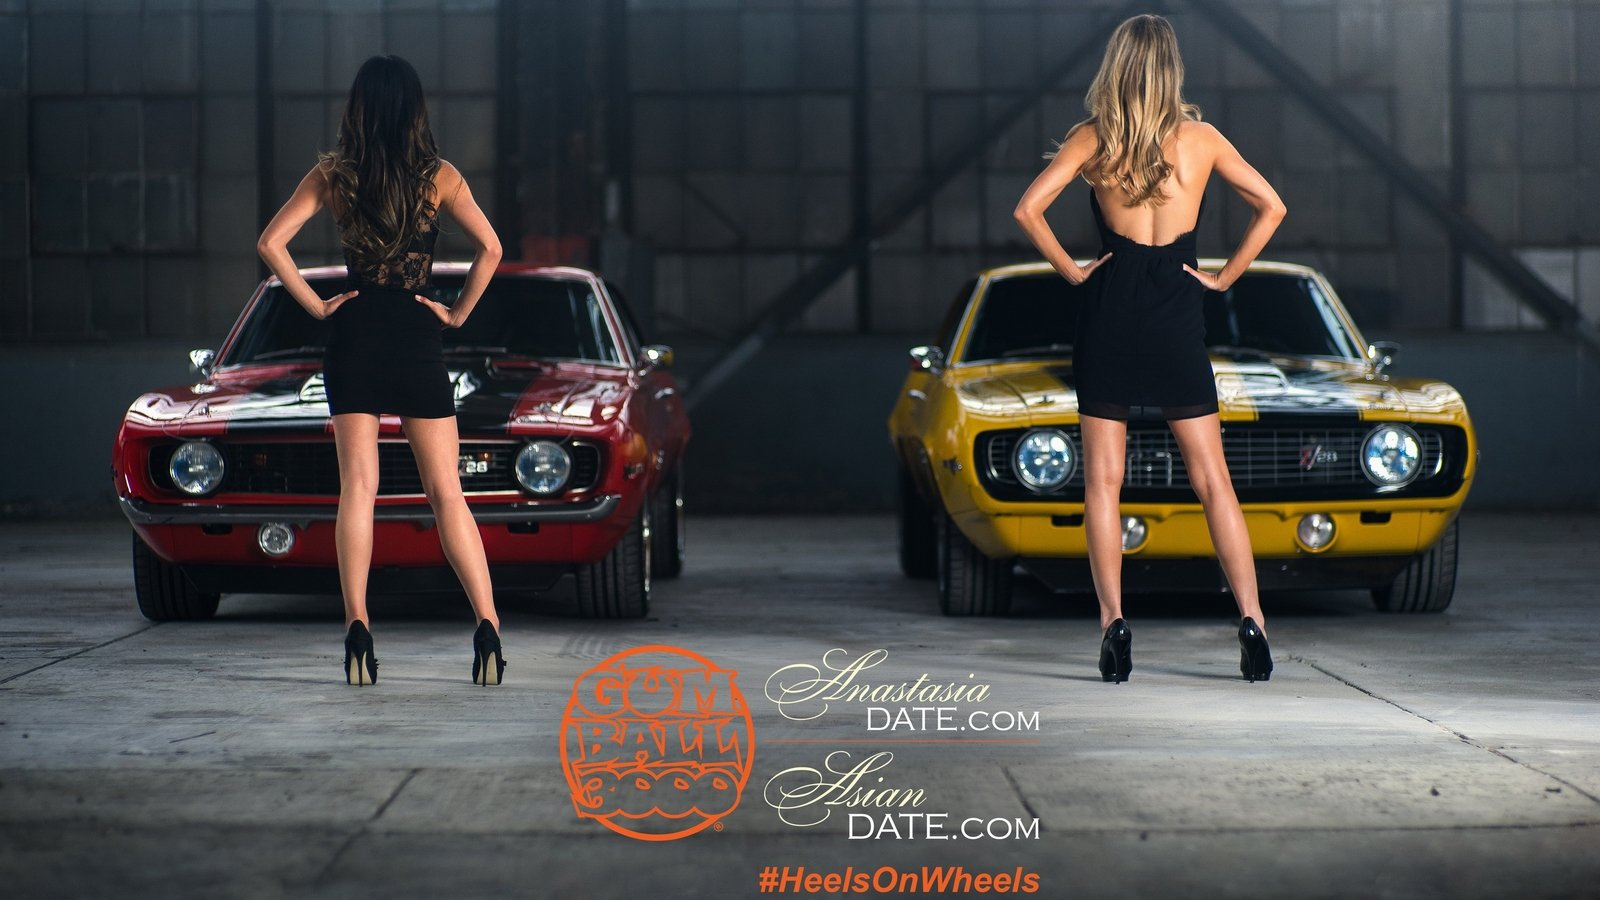 GUMBALL 3000 Announcement Pictures, Photos, Wallpapers ...